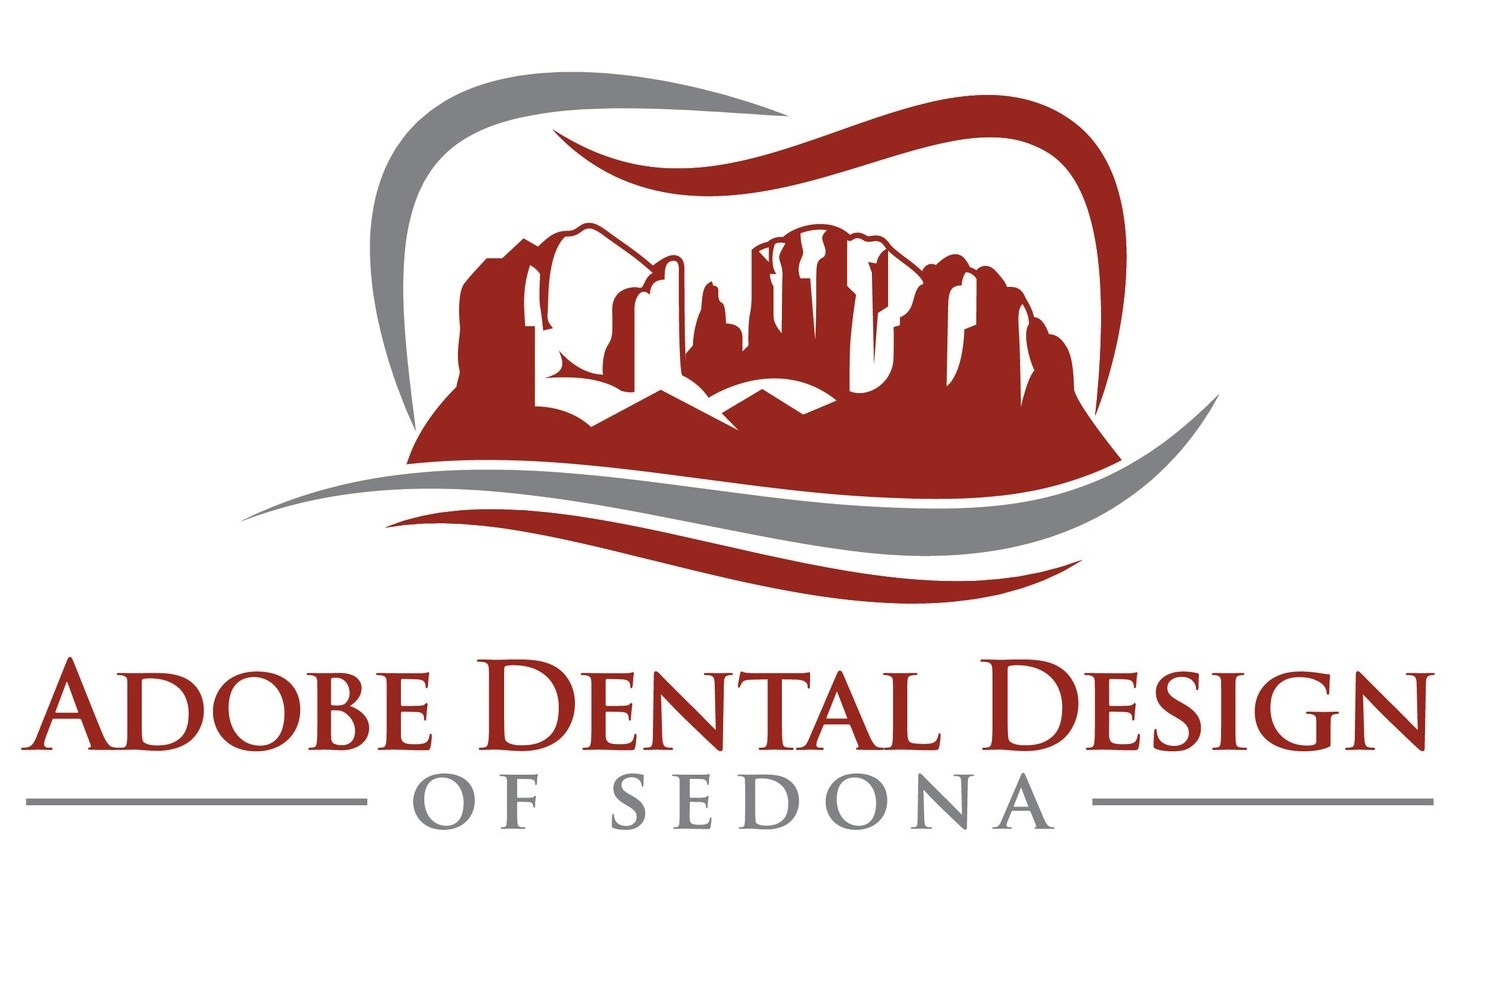 Adobe Dental Design of Sedona